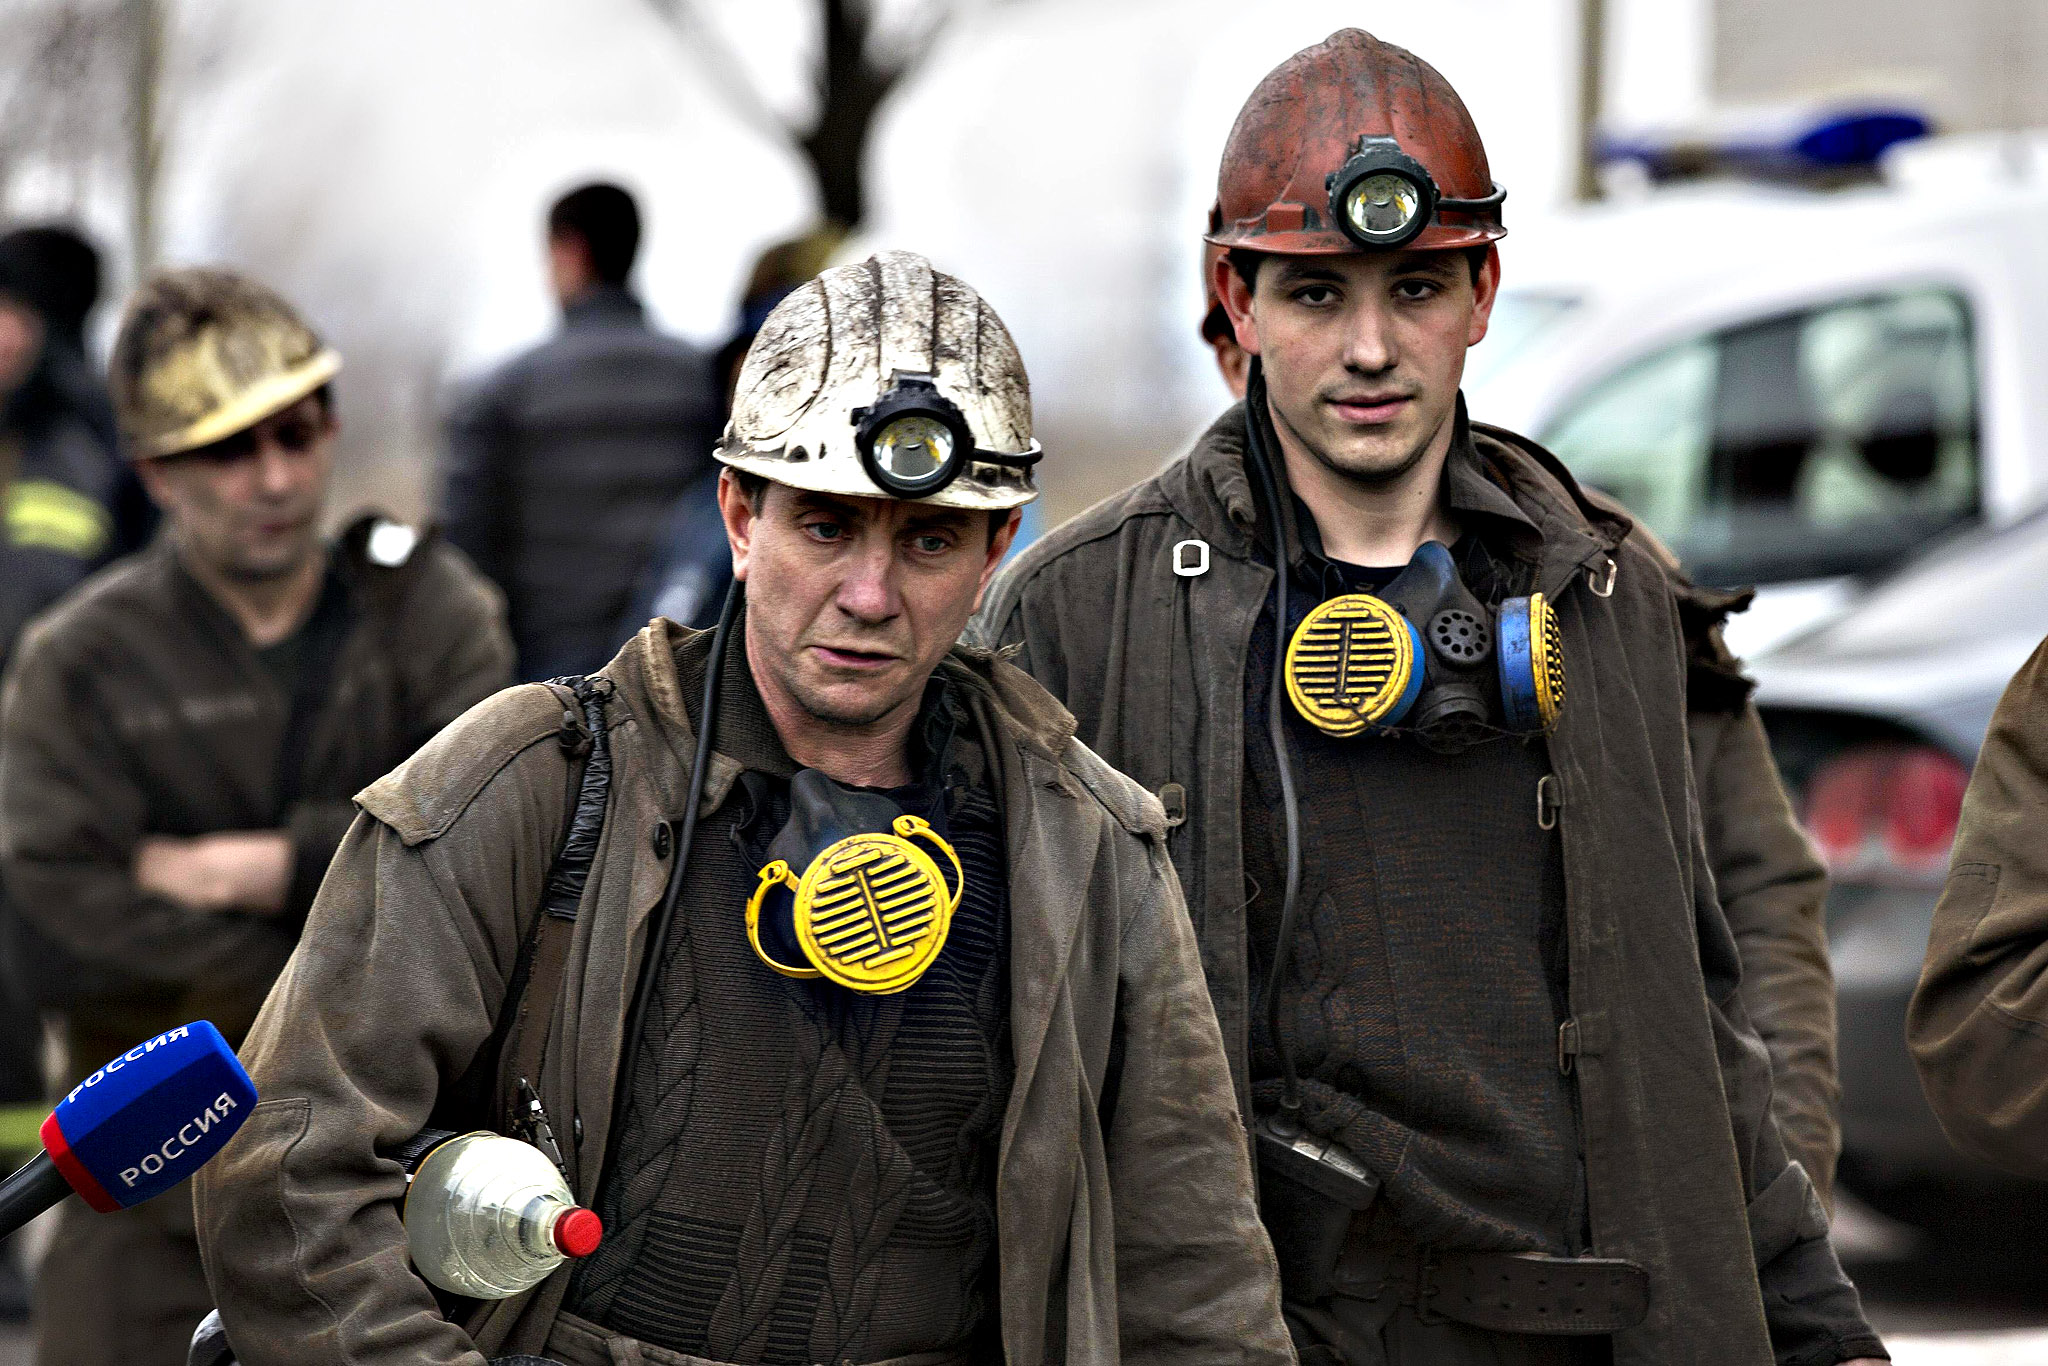 Miners arrive to help with the rescue effort in Zasyadko coal mine in Donetsk...Miners arrive to help with the rescue effort in Zasyadko coal mine in Donetsk March 4, 2015. A blast at the coal mine in the eastern Ukrainian rebel stronghold of Donetsk killed more than 30 people, a local official said on Wednesday, with dozens more miners who were underground at the time unaccounted for.